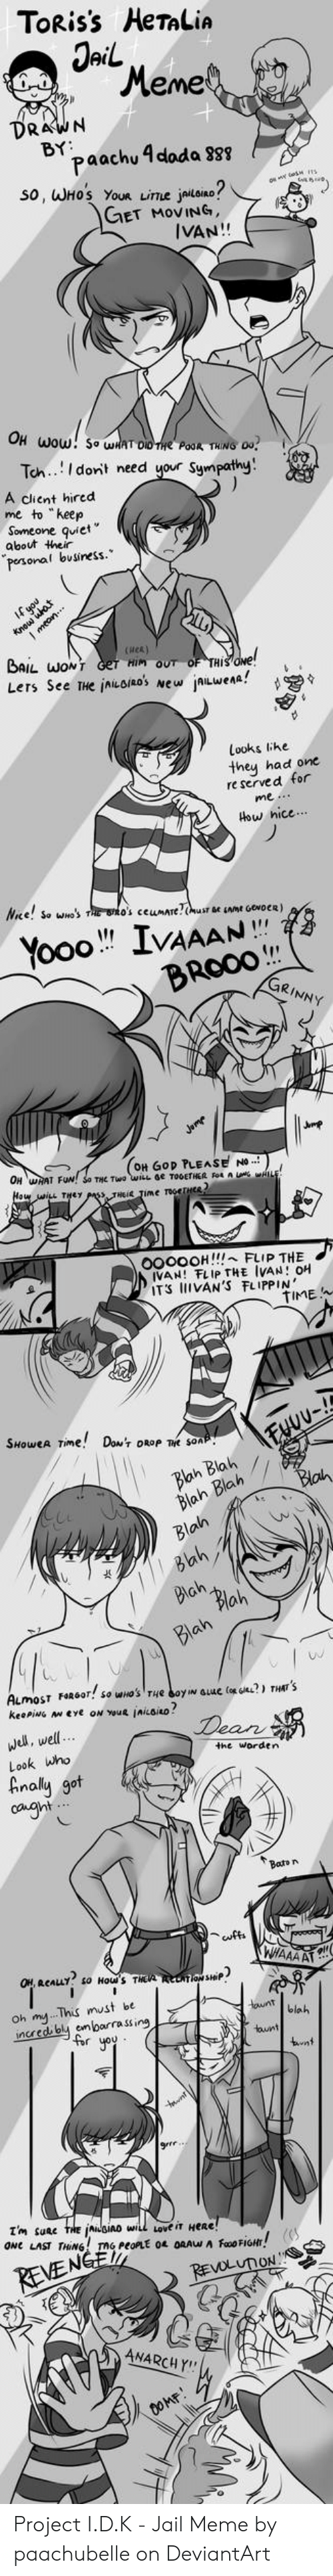 """Jail Meme: TORIS's HeTaLiA  Jail  Meme  DRAWN  BY  paachu 4 doda 888  So, WHOS YoUR LITLE jailoino  GET MOVING,  IVAN!!  OH Wow! So wHAT DID THe PaoR THING O0  Tch.Idont need your Sympathy  A client hired  me to """"keep  Someone quiet""""  about their  0.9%  pesonal business.""""  4t  Know  Lmeon  (HeA)  BAIL WONT Get HIM OUT OF THIS ONe!  Lers See THe inuoiRos New AILWena!  Looks like  they had one  ved for  re ser  How hice..  NRe! So wO's T O's ceunATe c Amt GENDER)  Yooo IVAAAN  BROOO  GRINNY  Jumr  OH WRAT FUN!  (OH GOp PLEASE NO  0000OH!!! FLIP THE  IVAN! FLIP THE IVAN! OH  ITS IIIVAN'S FLIPPIN  TIME  SHOWEA TIme! DOw'T OROP Te SOAP  Fuuv-  Blah Blah  Blah Blah  Blah  Blah  Bah  Blah  Blah  Blah  ALmosT FORG0T So WHO'S THe oyIN GLue (oe Ge?) THAT9  keepiNG AN eye oN YouR AiLoiRo  Dean  Wel, well  Look who  Analy  got  caght  Bato n  uffa  WHAAA AT  EALLY so How's THEA ENTow SHiP  Oh myThis must be  incred bly enloarrassing  for you  tountLlet  tount  wnt  I'm suac THE Asino wil Love iT HeRe!  ONC LAST THNG TAG PEOPLE 04 DRAW A Fao FiGHt  REVENGE  REVOLUTON S  ANARCHY  O0MF Project I.D.K - Jail Meme by paachubelle on DeviantArt"""